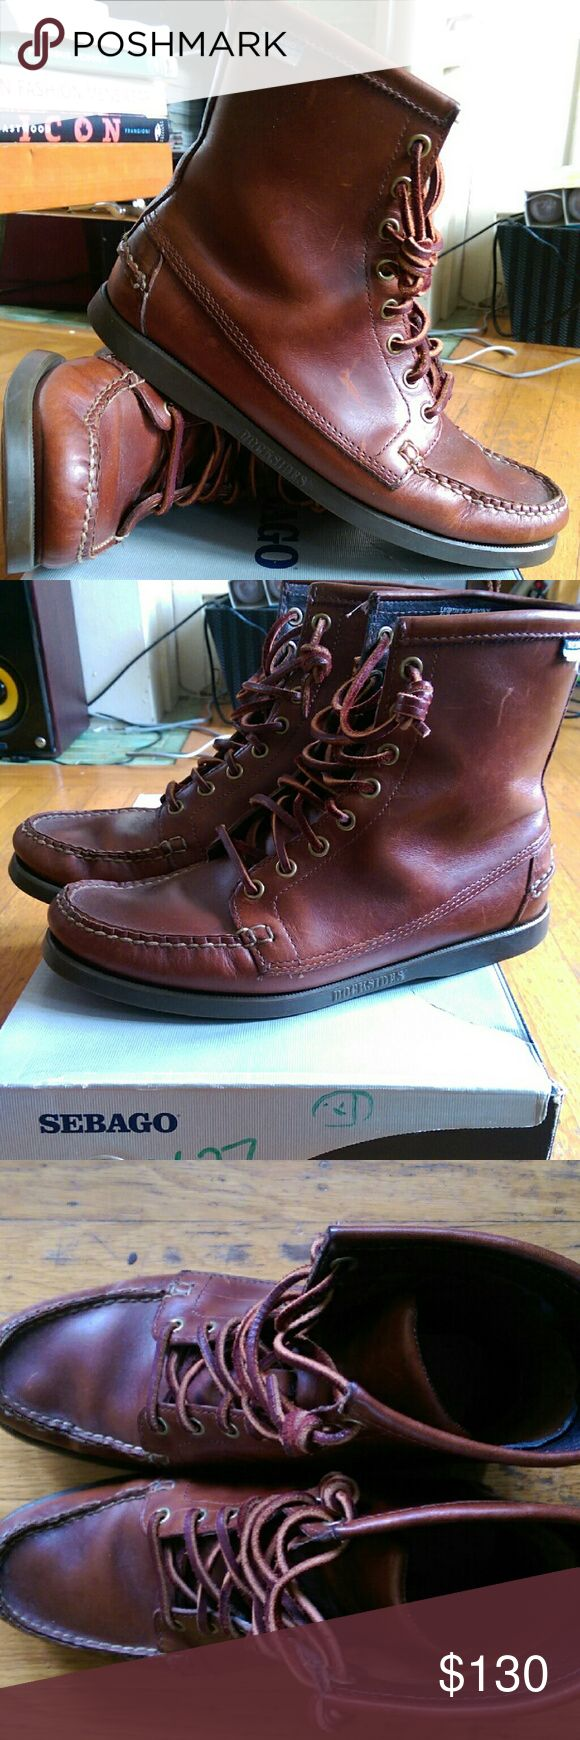 Men's Sebago x Ronnie Fieg Boat Boots Size 7 Leather boat boots from Summer 2010, one of only 120 pairs made in this color. Also includes original box. Sebago Shoes Boots